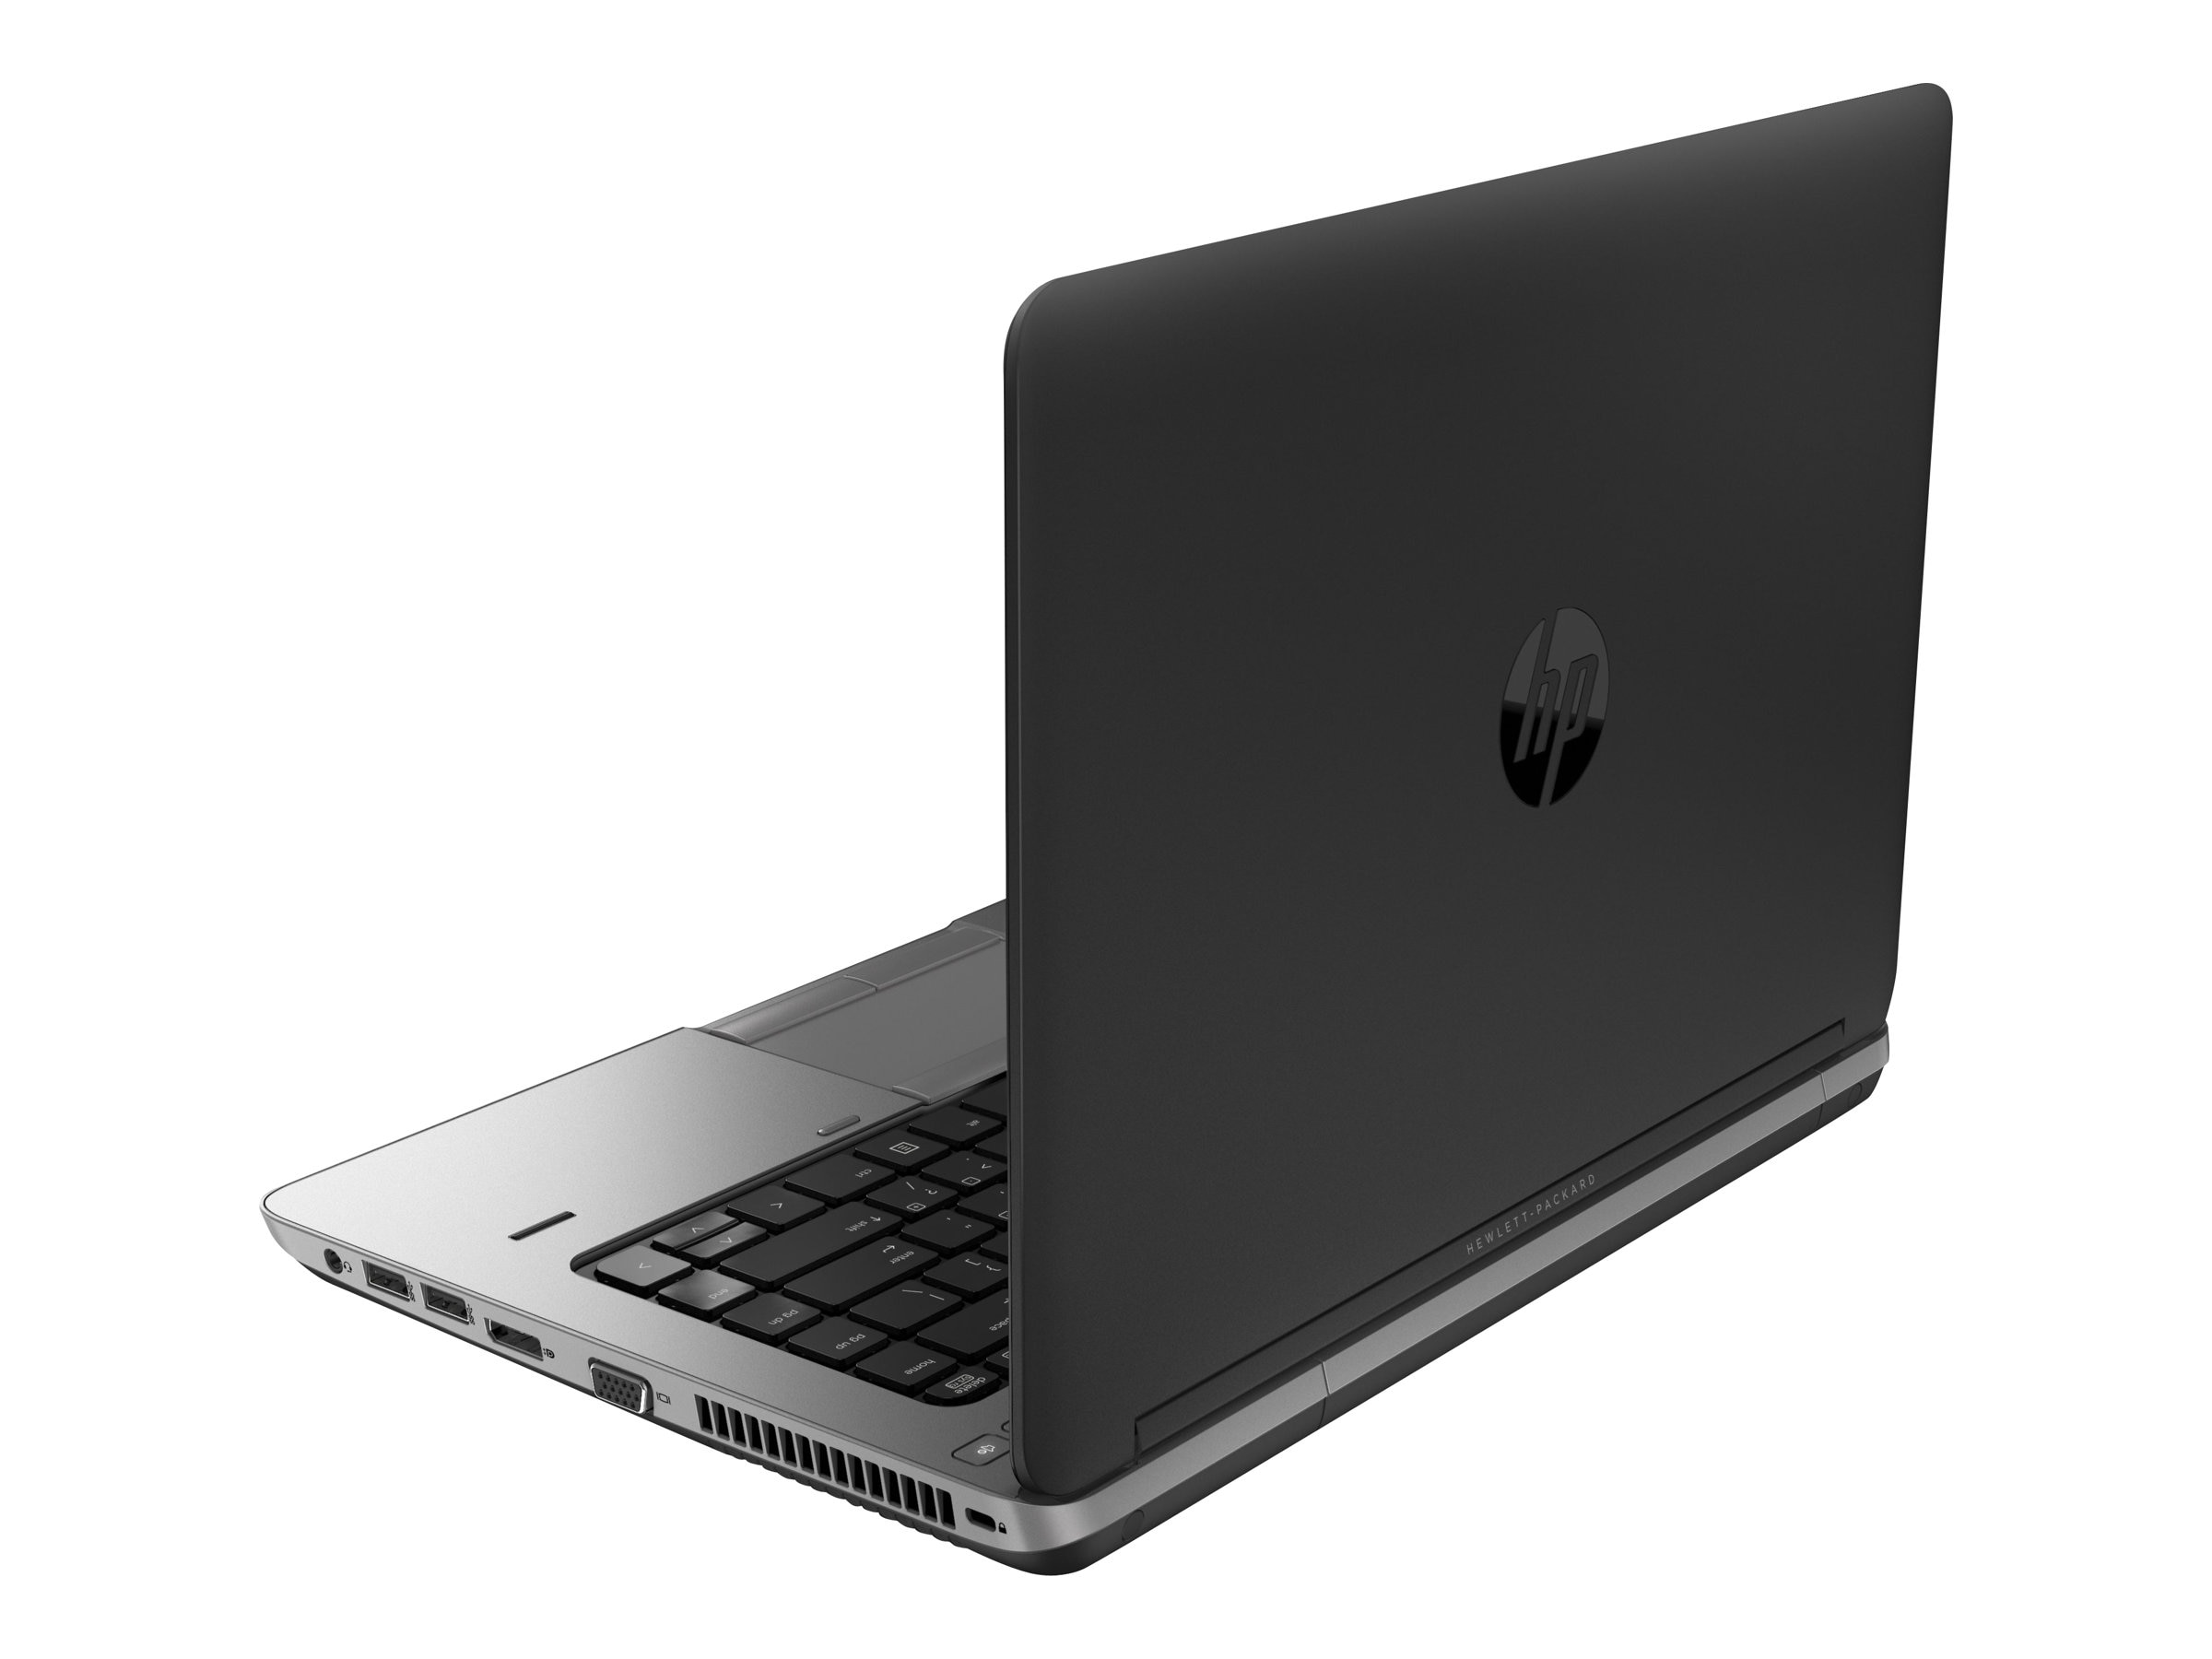 HP Shape the Future ProBook 640 G1 Core i5-4210M 2.6GHz 4GB 500GB DVD abgn FR WC 6C 14 HD+ W7P64-W8.1P, K4K99UA#ABA